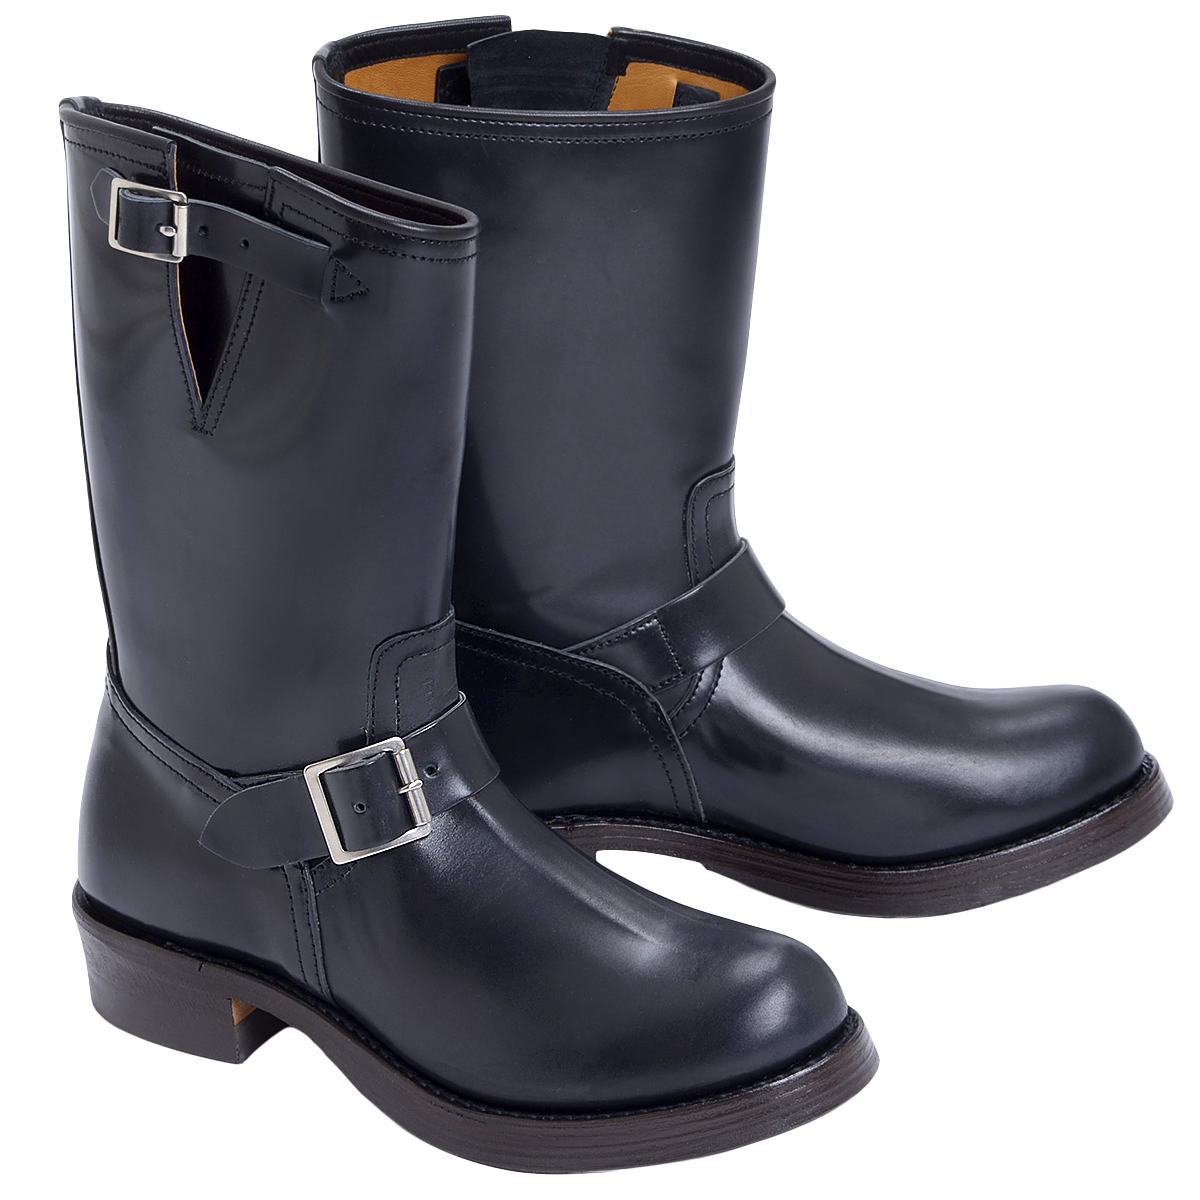 Transparent boot fashion. Buco cordovan engineer boots